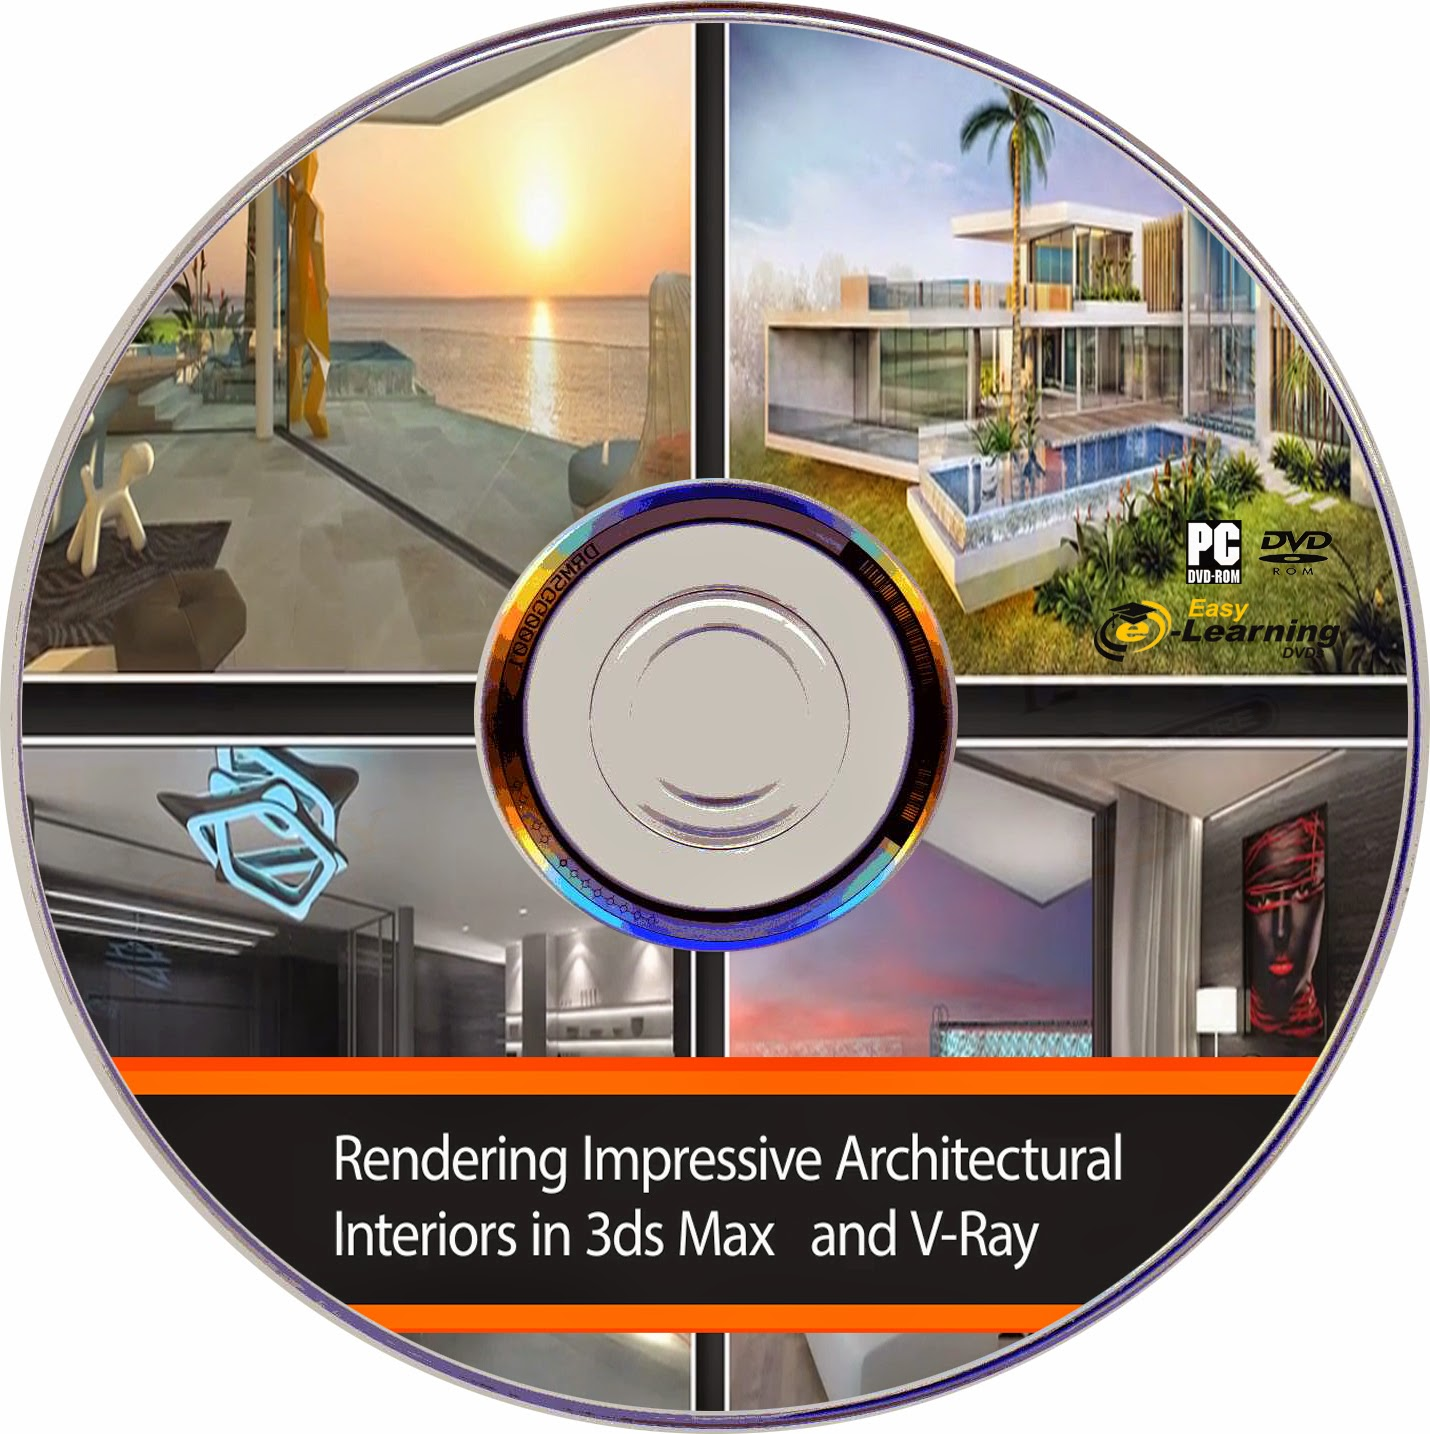 Rendering Impressive Interiors in 3ds Max and V-Ray Video Training DVD